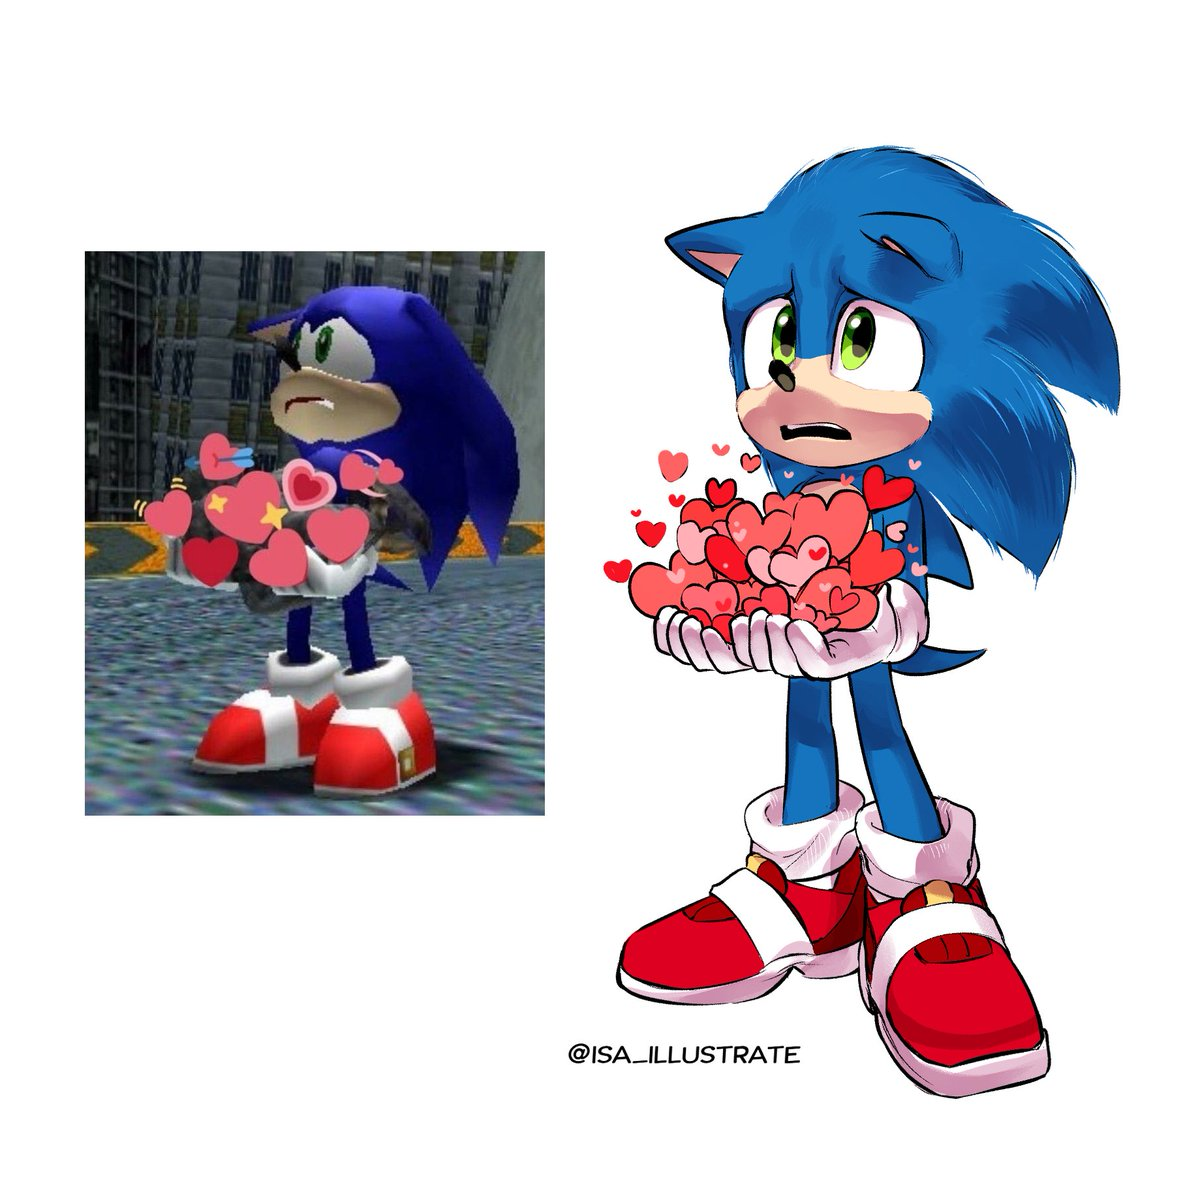 이사𝗜𝘀𝗮 통판배송진행중 On Twitter Redraw My Favorite Sonic Images In Sonicmovie Style